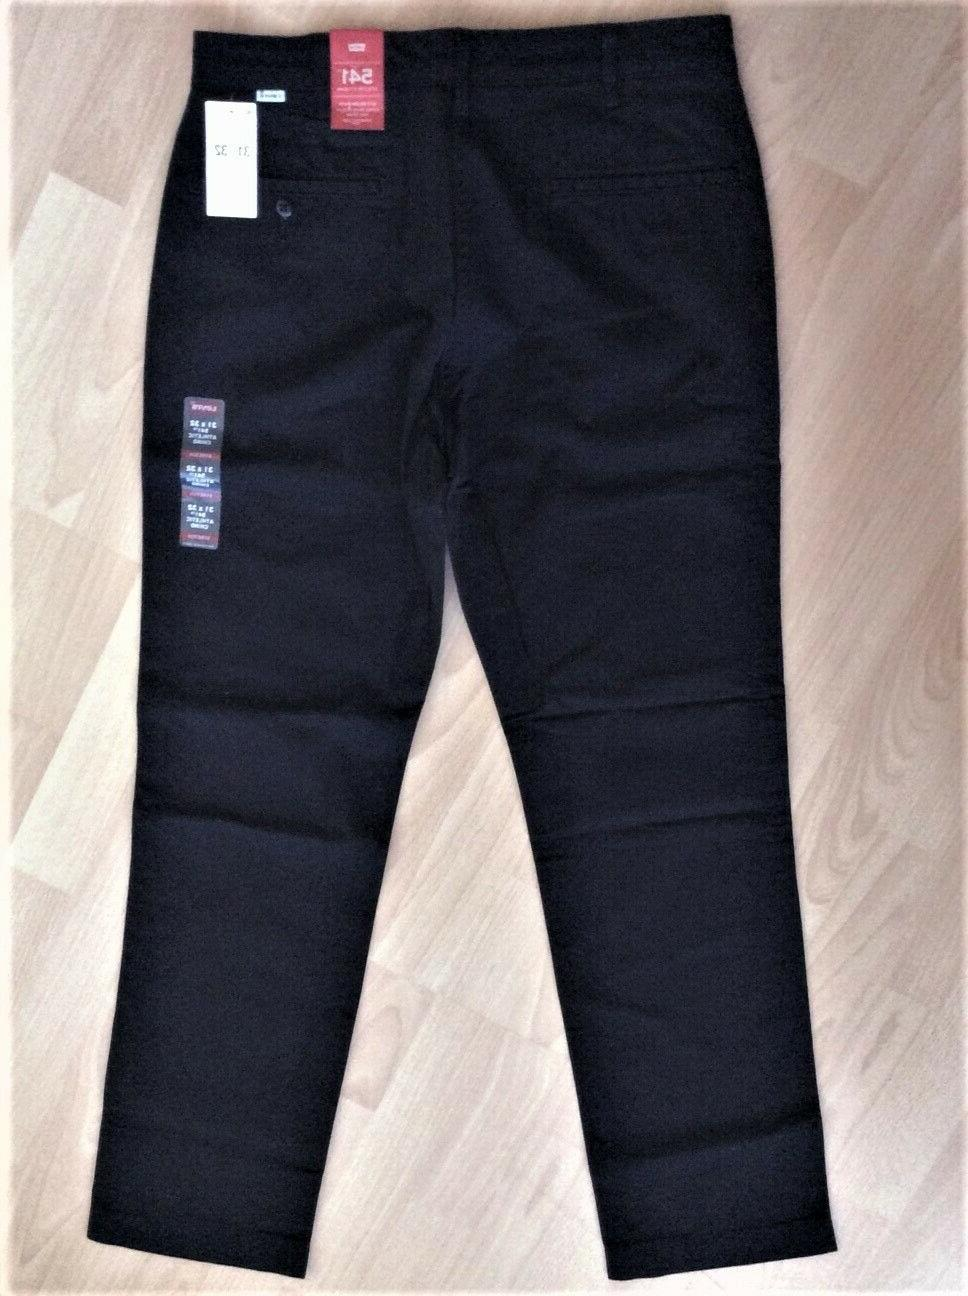 Levi's Men's NWT 0001 44x32 ~ Fit Chinos Pants